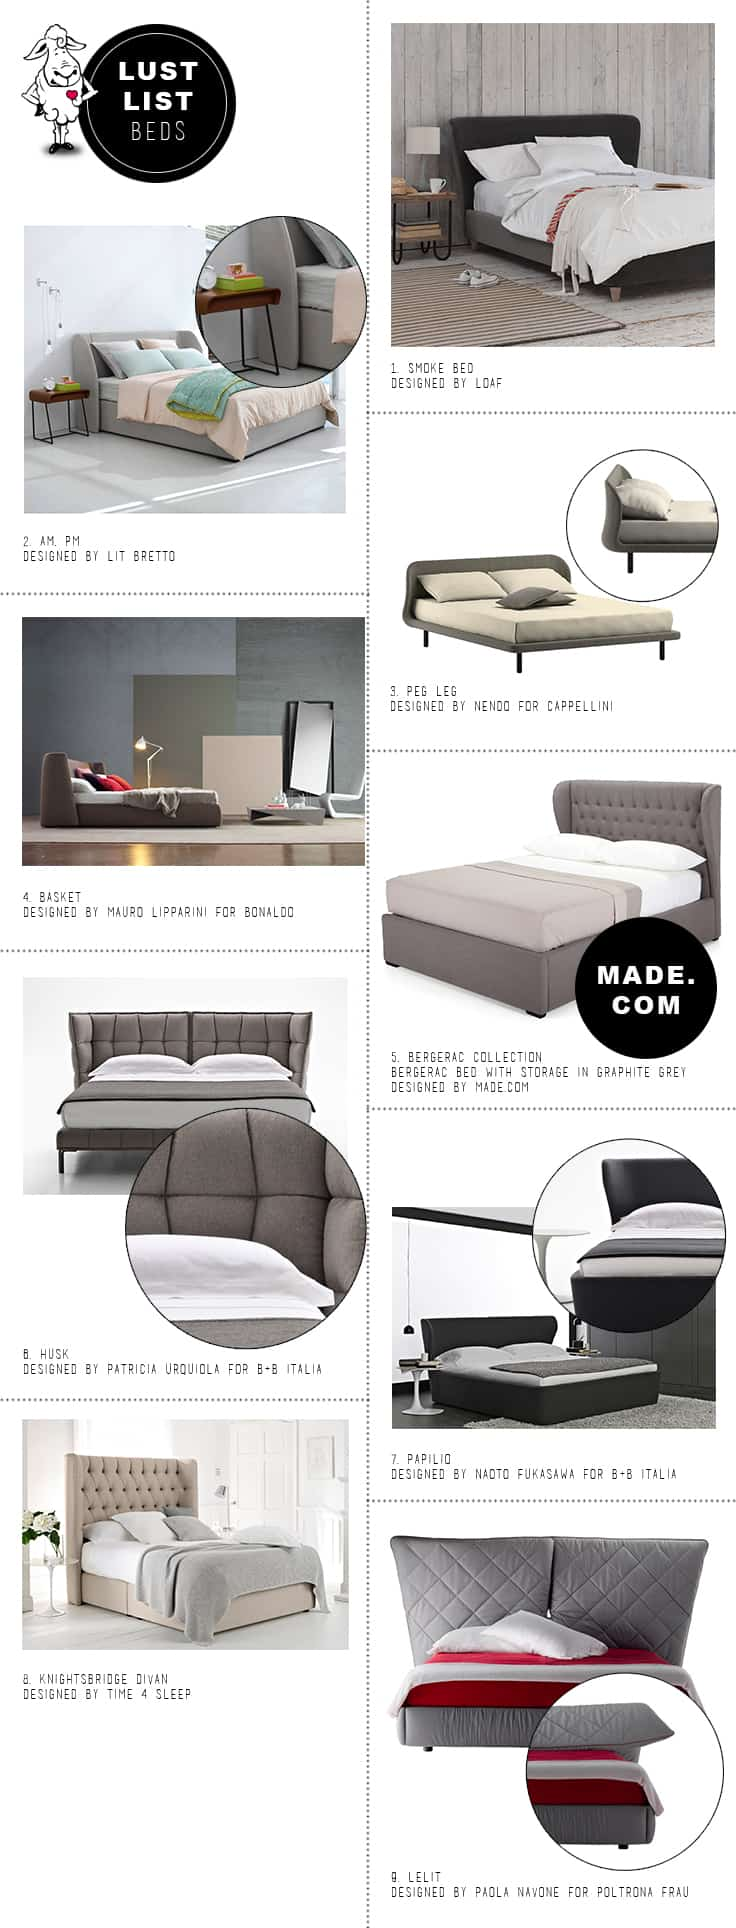 The Design Sheppard's favourite bed designs